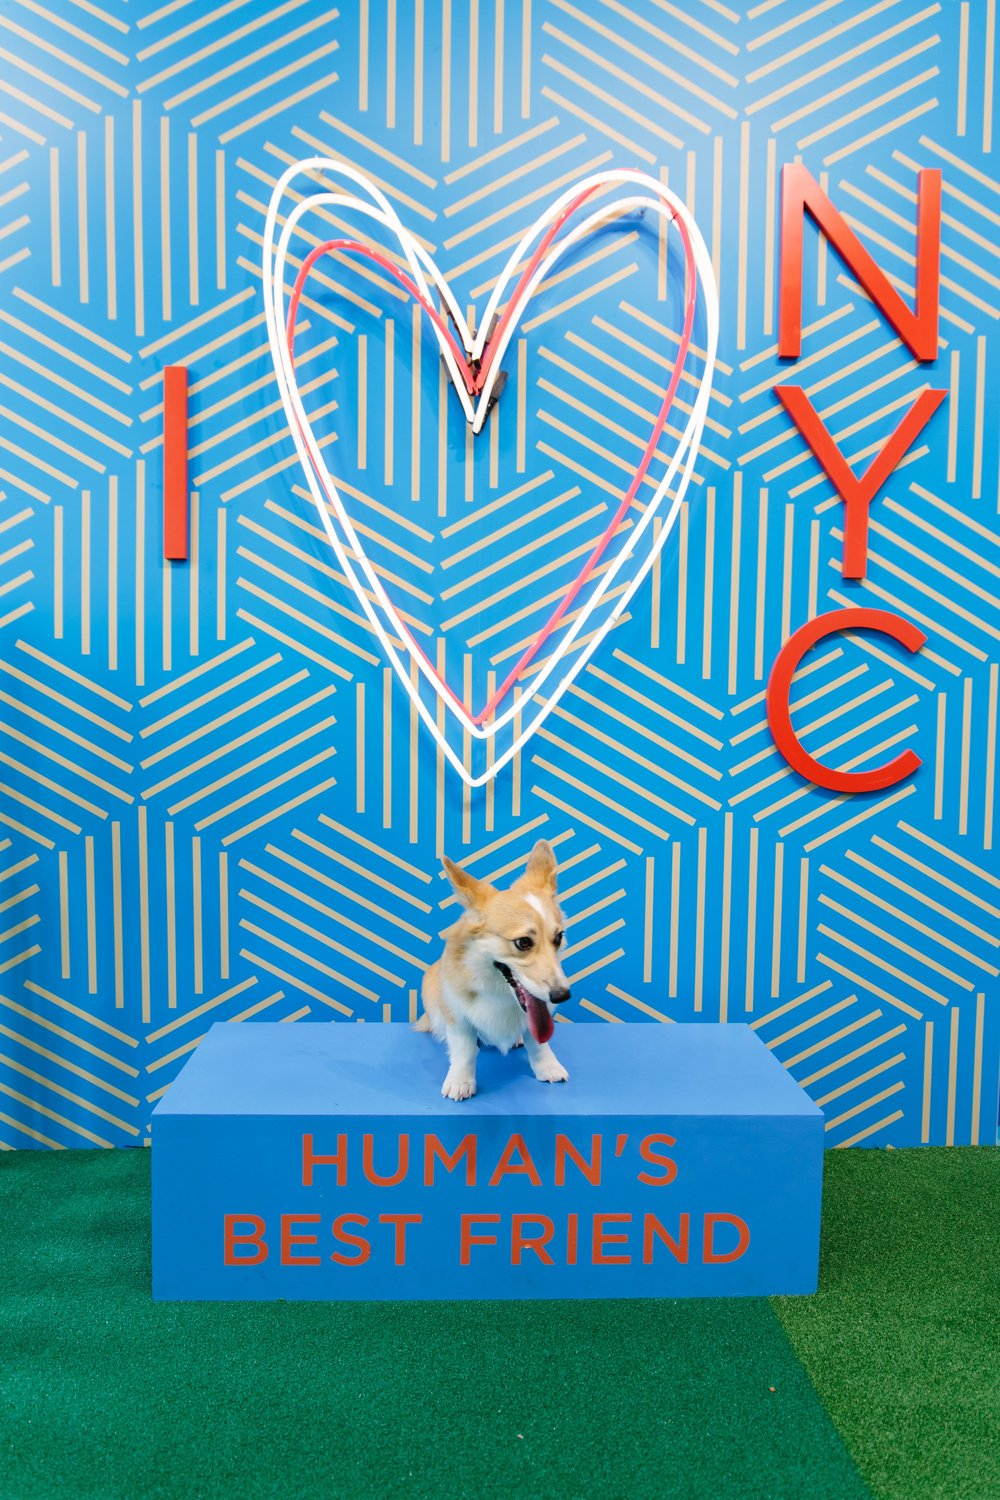 Elizabeth the Corgi visits Humans Best Friend in NYC. Read the full review of Human's Best Friend and see more photos on The Dapple.